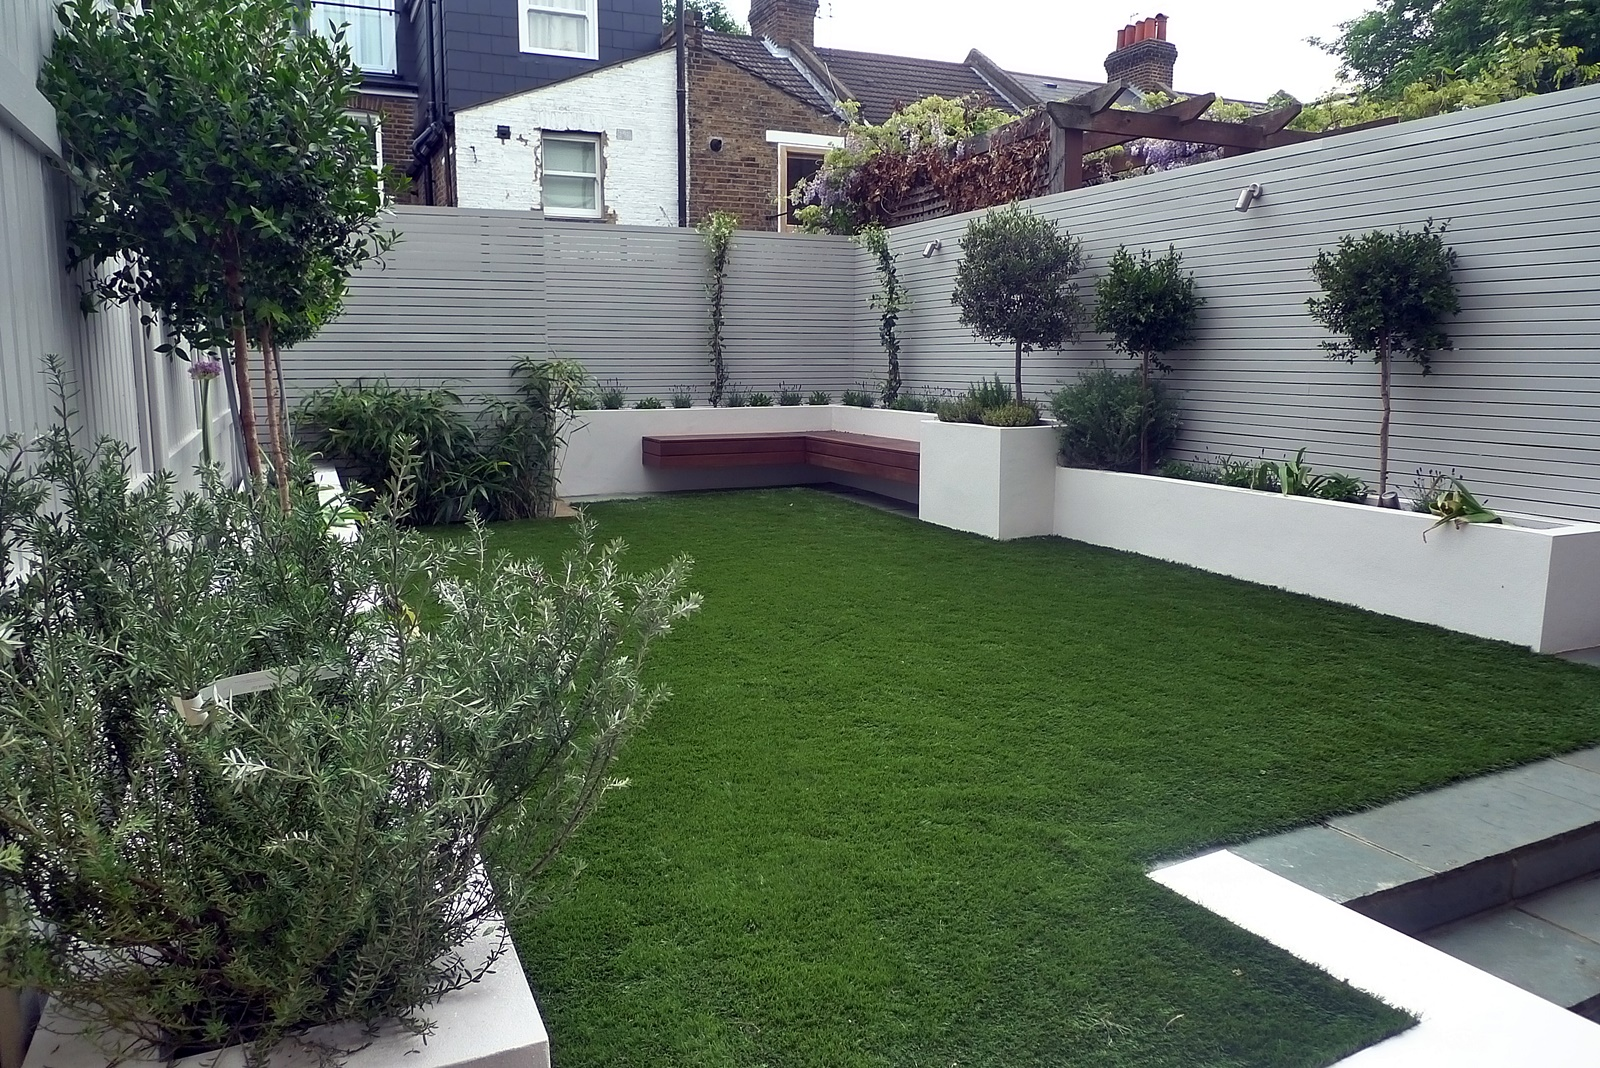 london garden blog london garden blog gardens from On modern garden design ideas